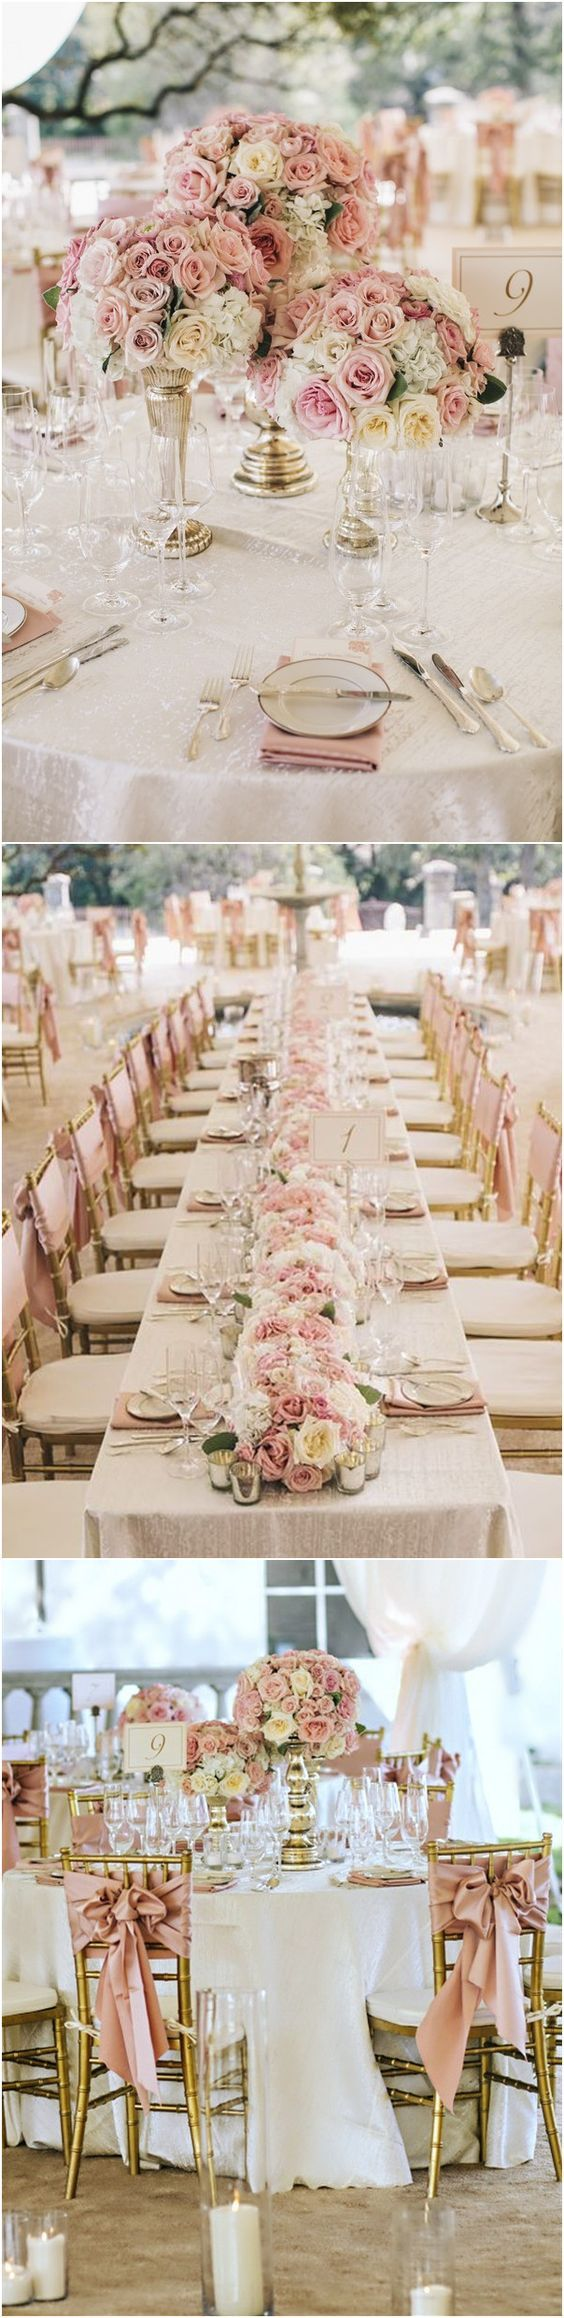 Wedding decorations in nigeria november 2018  best One Day Happily Ever After images on Pinterest